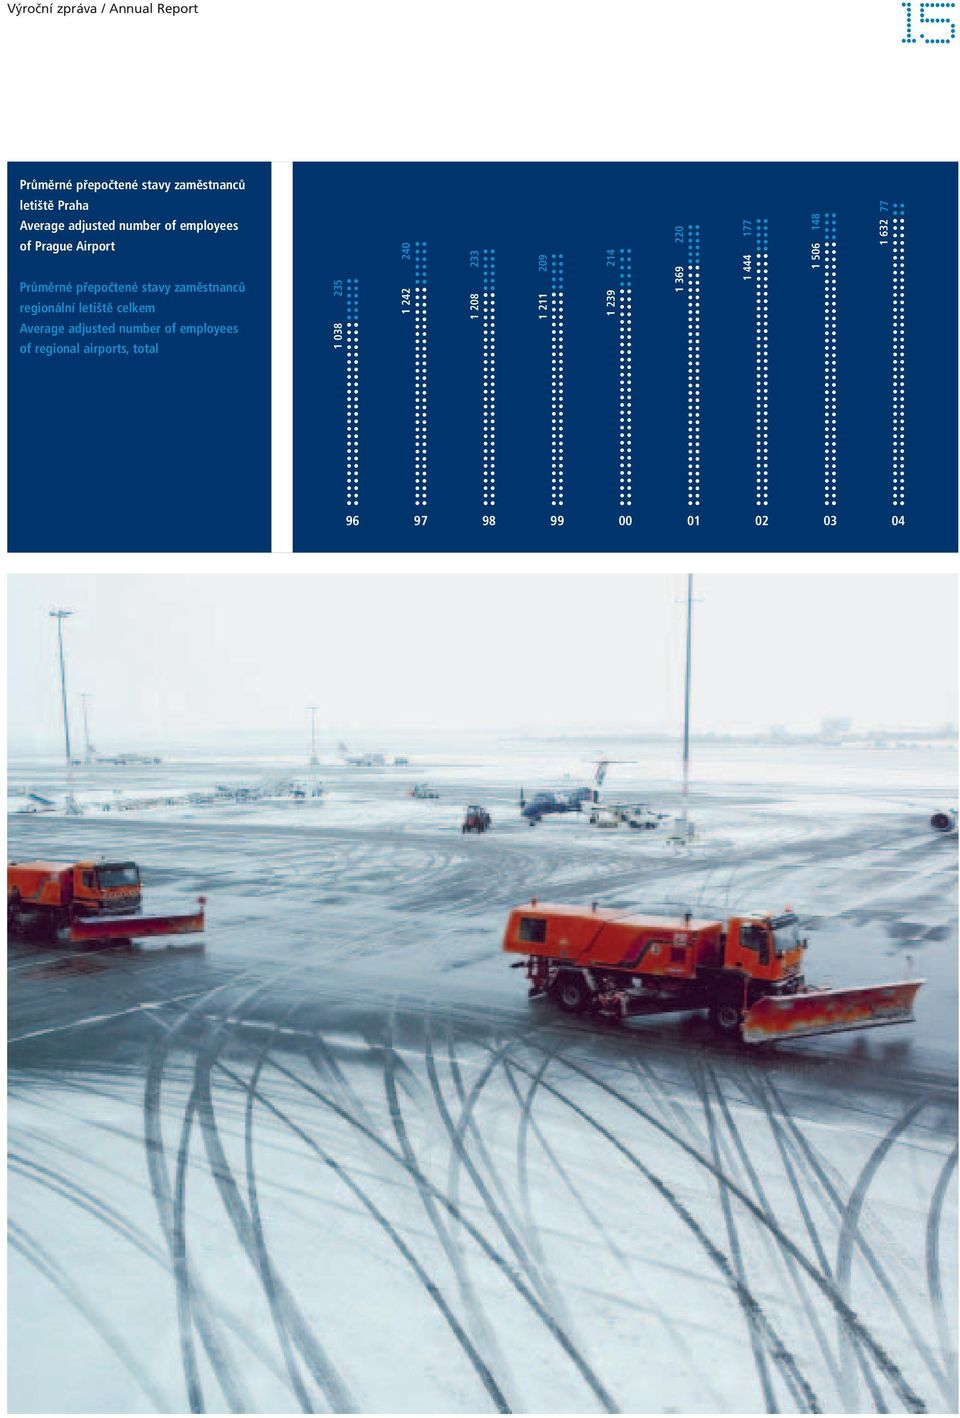 letiště celkem Average adjusted number of employees of regional airports, total 1 038 235 1 242